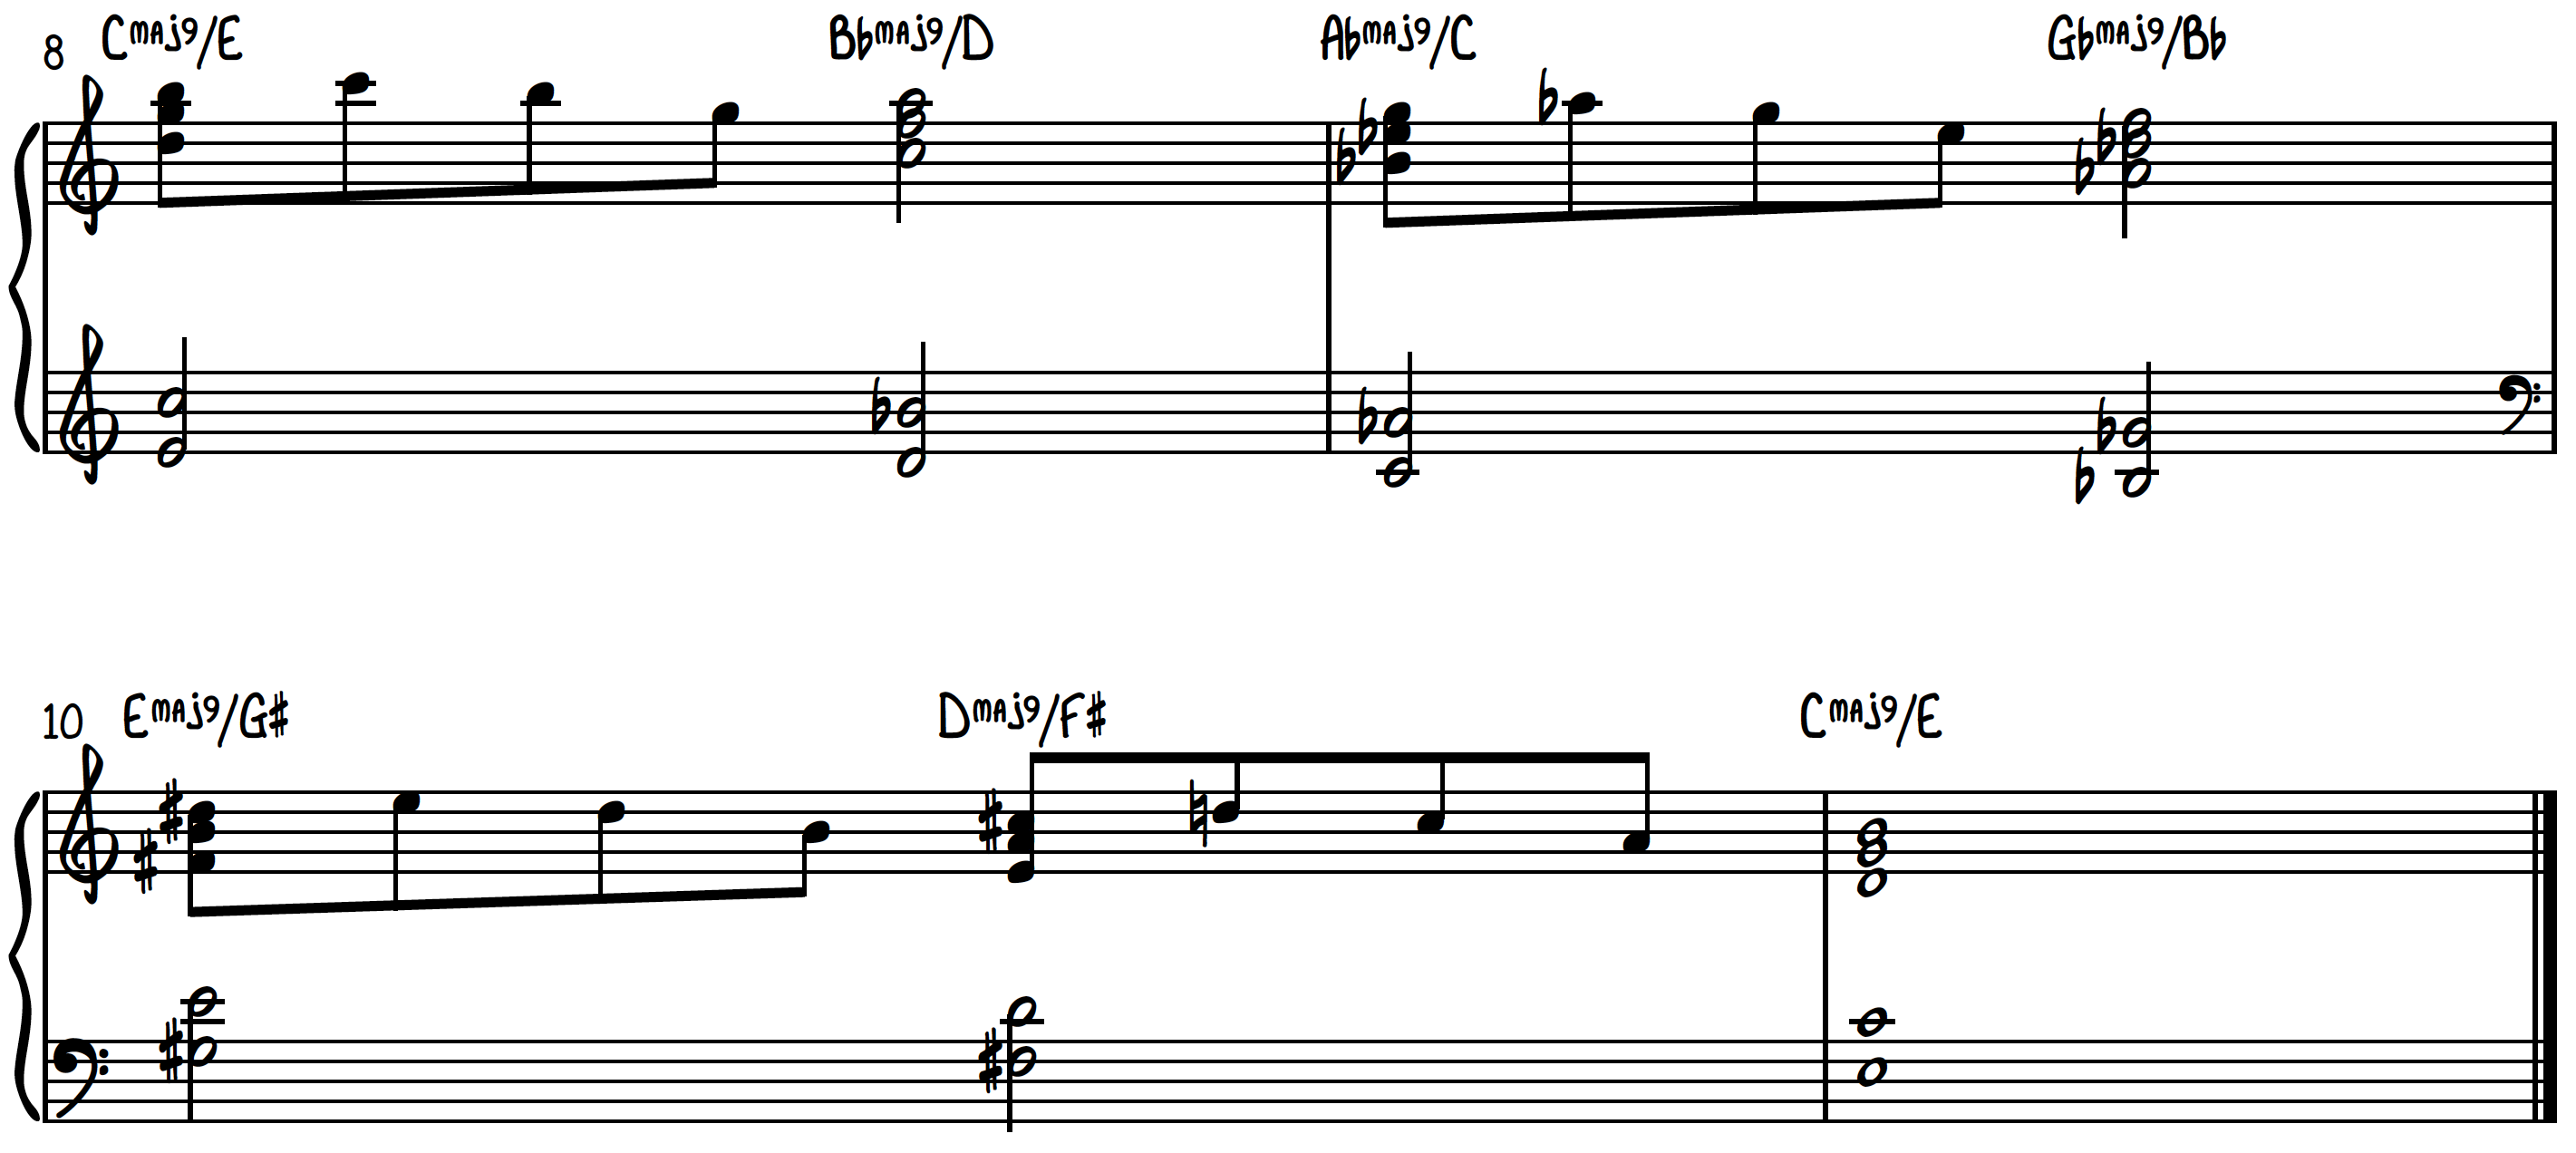 Example 3 - Heaven Chords used to harmonize primarily notes of C Scale